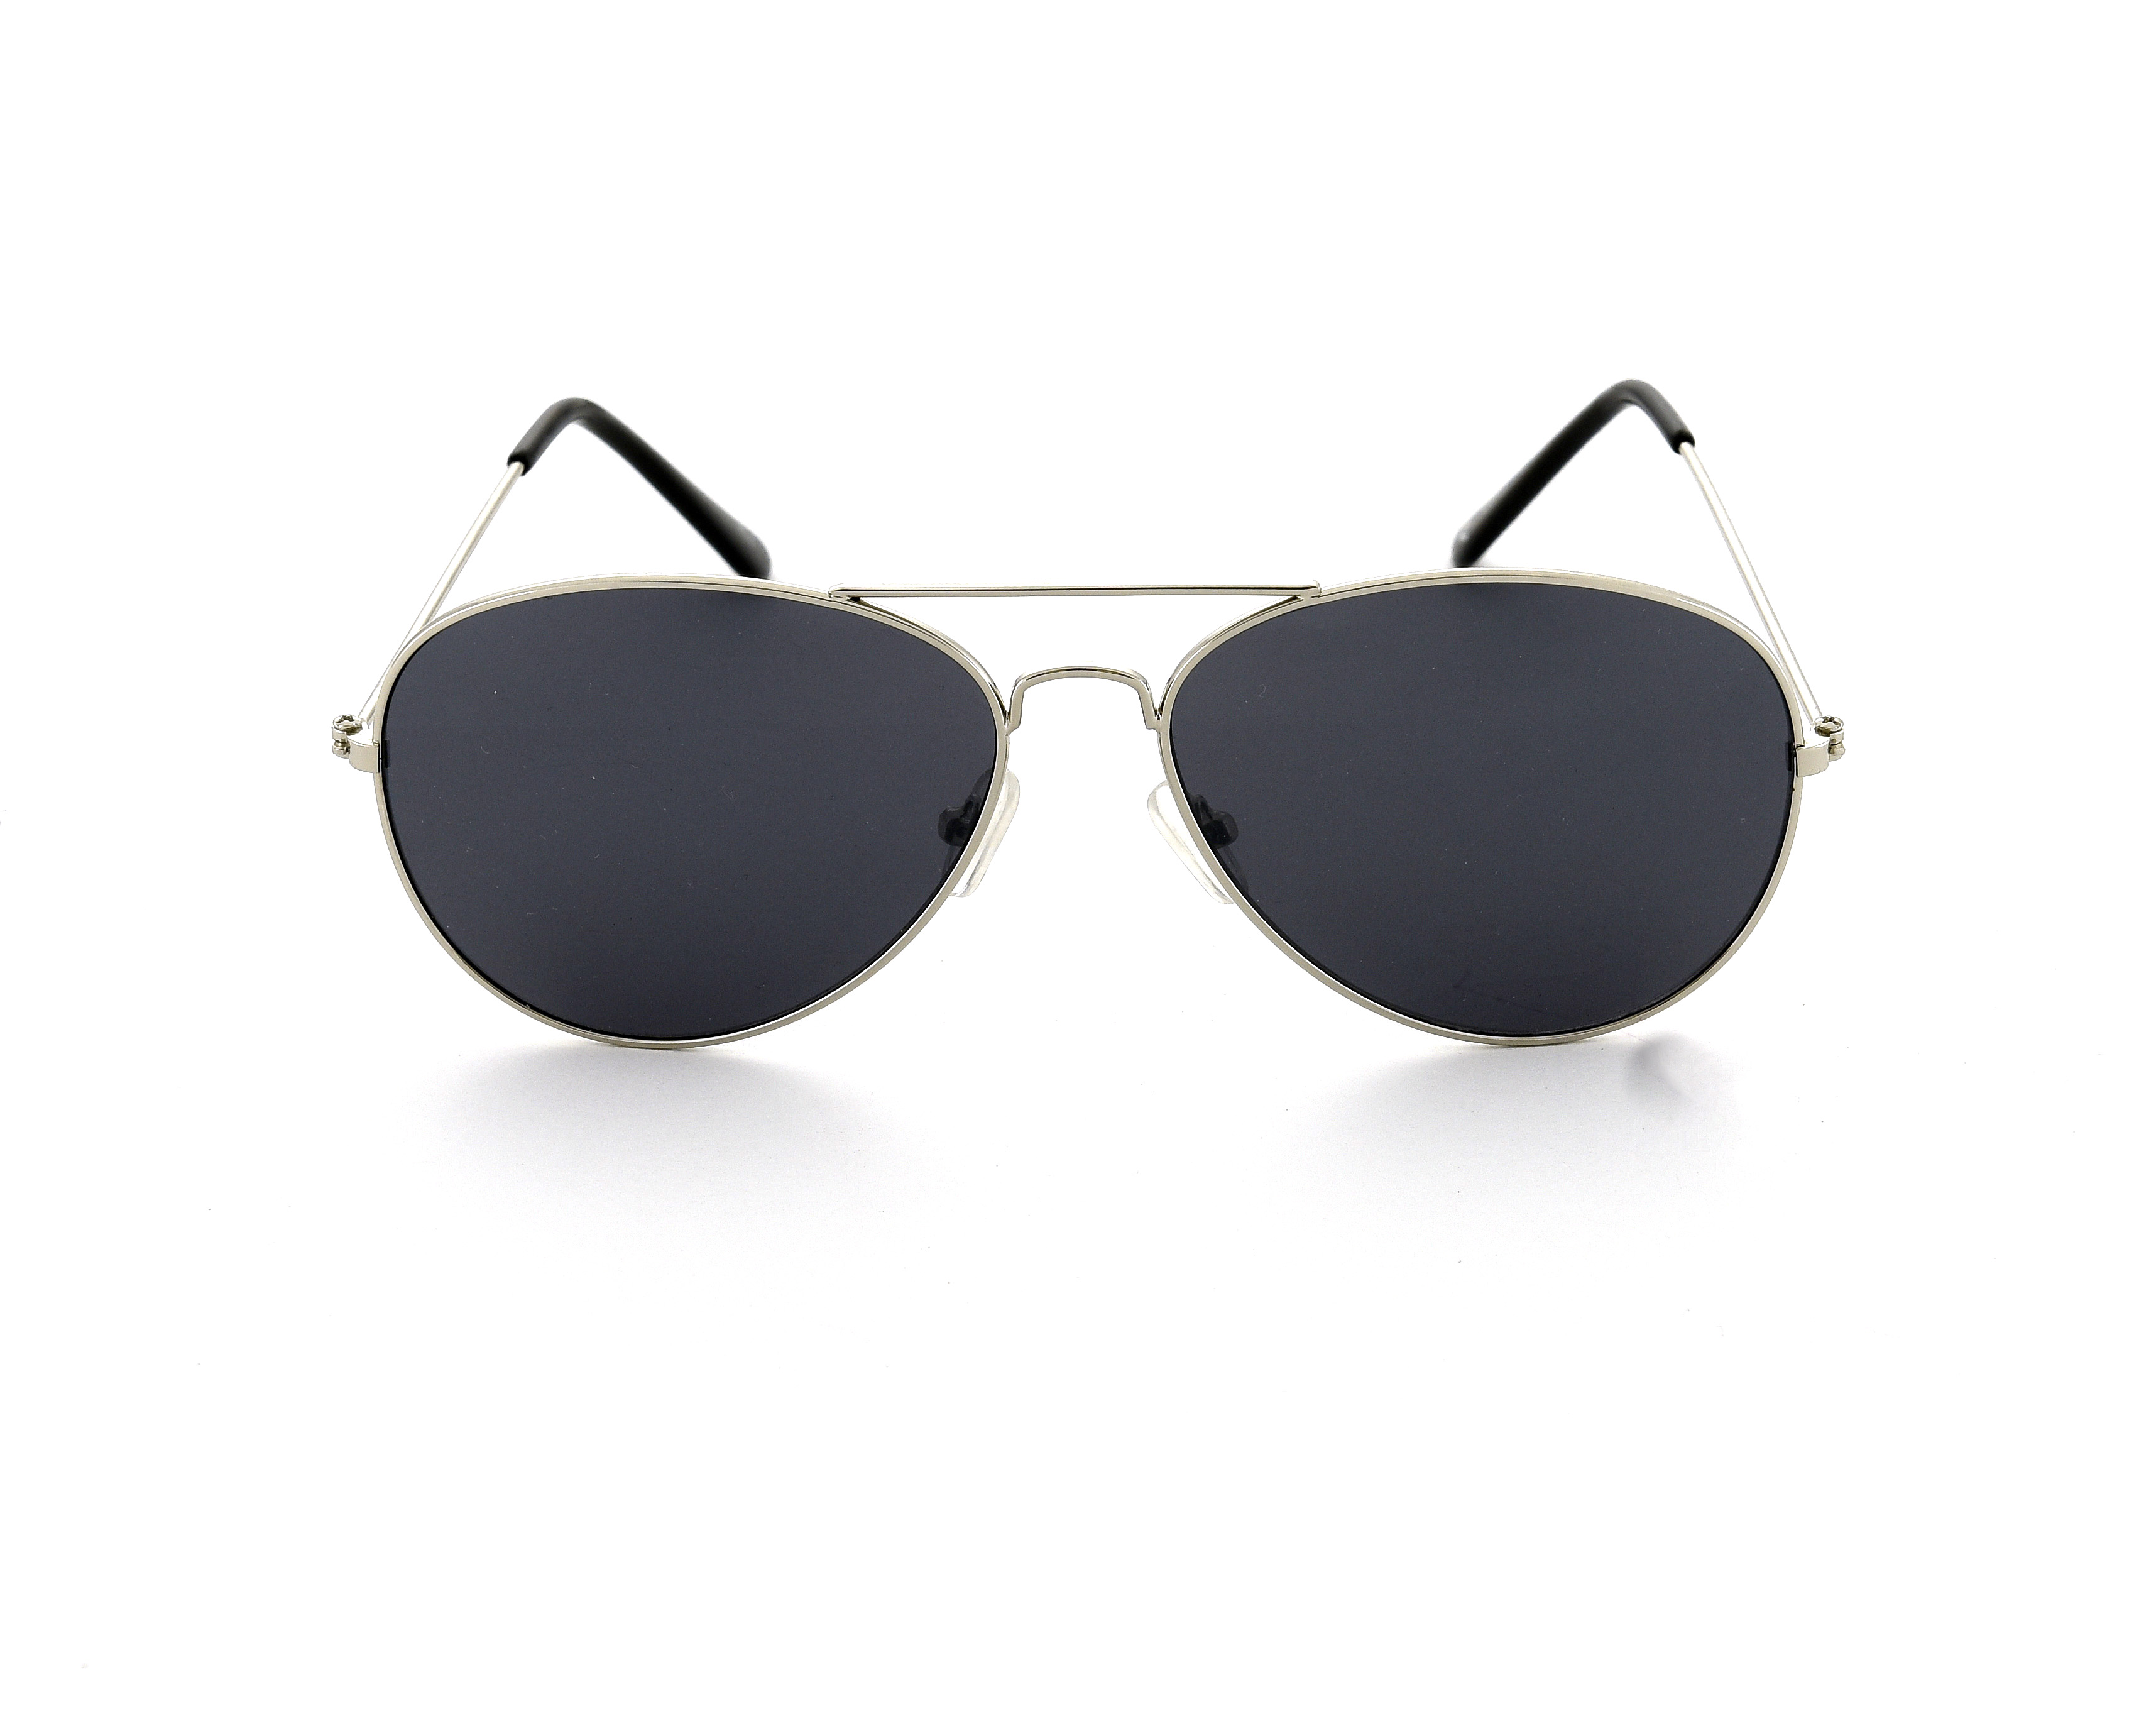 9d0ea27f09 Sentinel Silver Avitor Sunglasses Black Polarised Lens Designer Style Retro  Mens Ladies